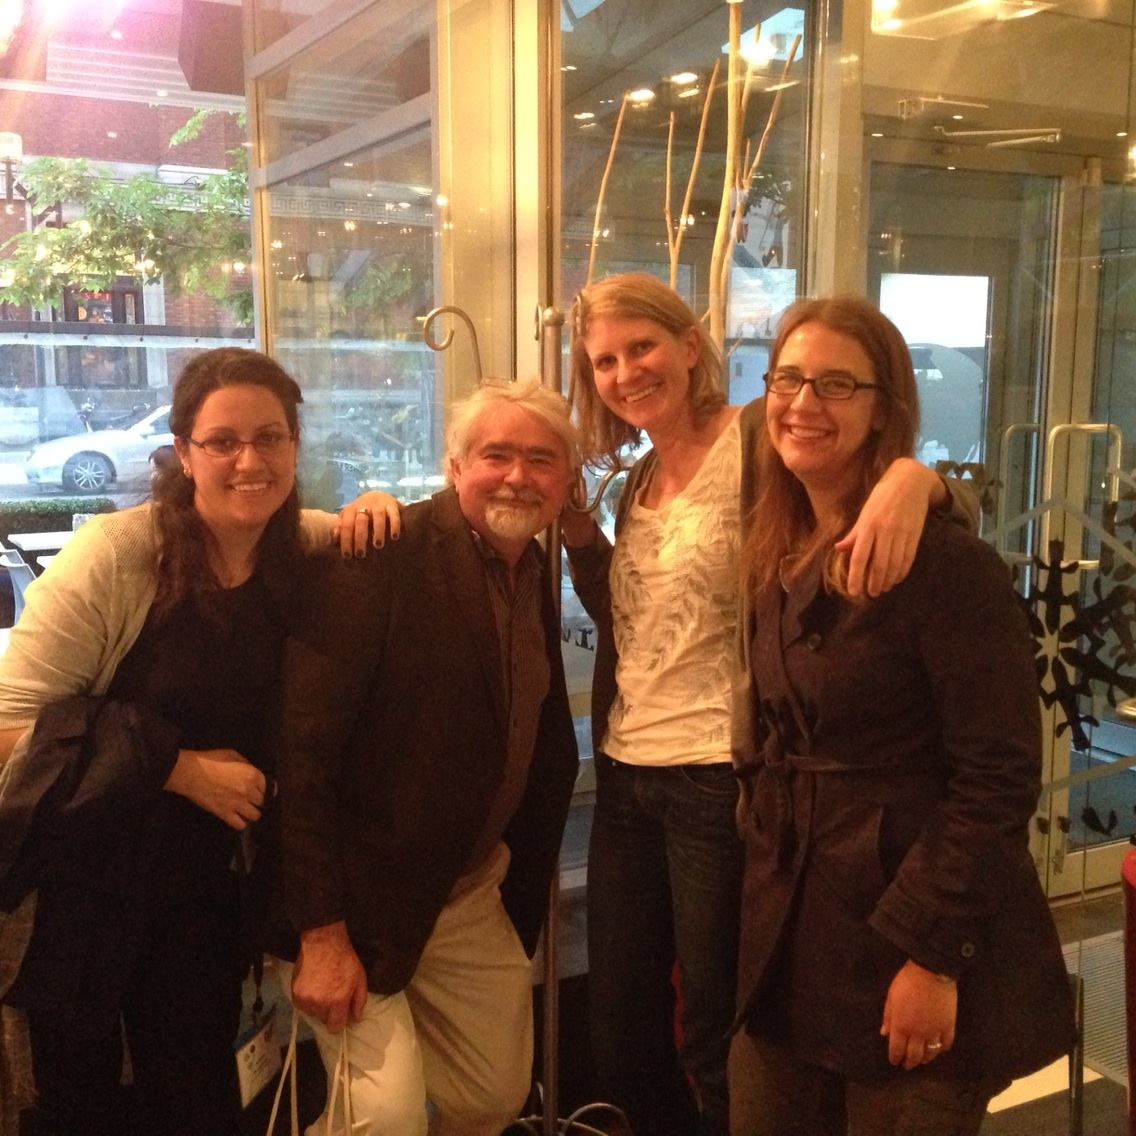 Susana Wadgymar, Art, Emily Austen and Jennifer Ison, CSEE Meeting, Montreal, 2014.